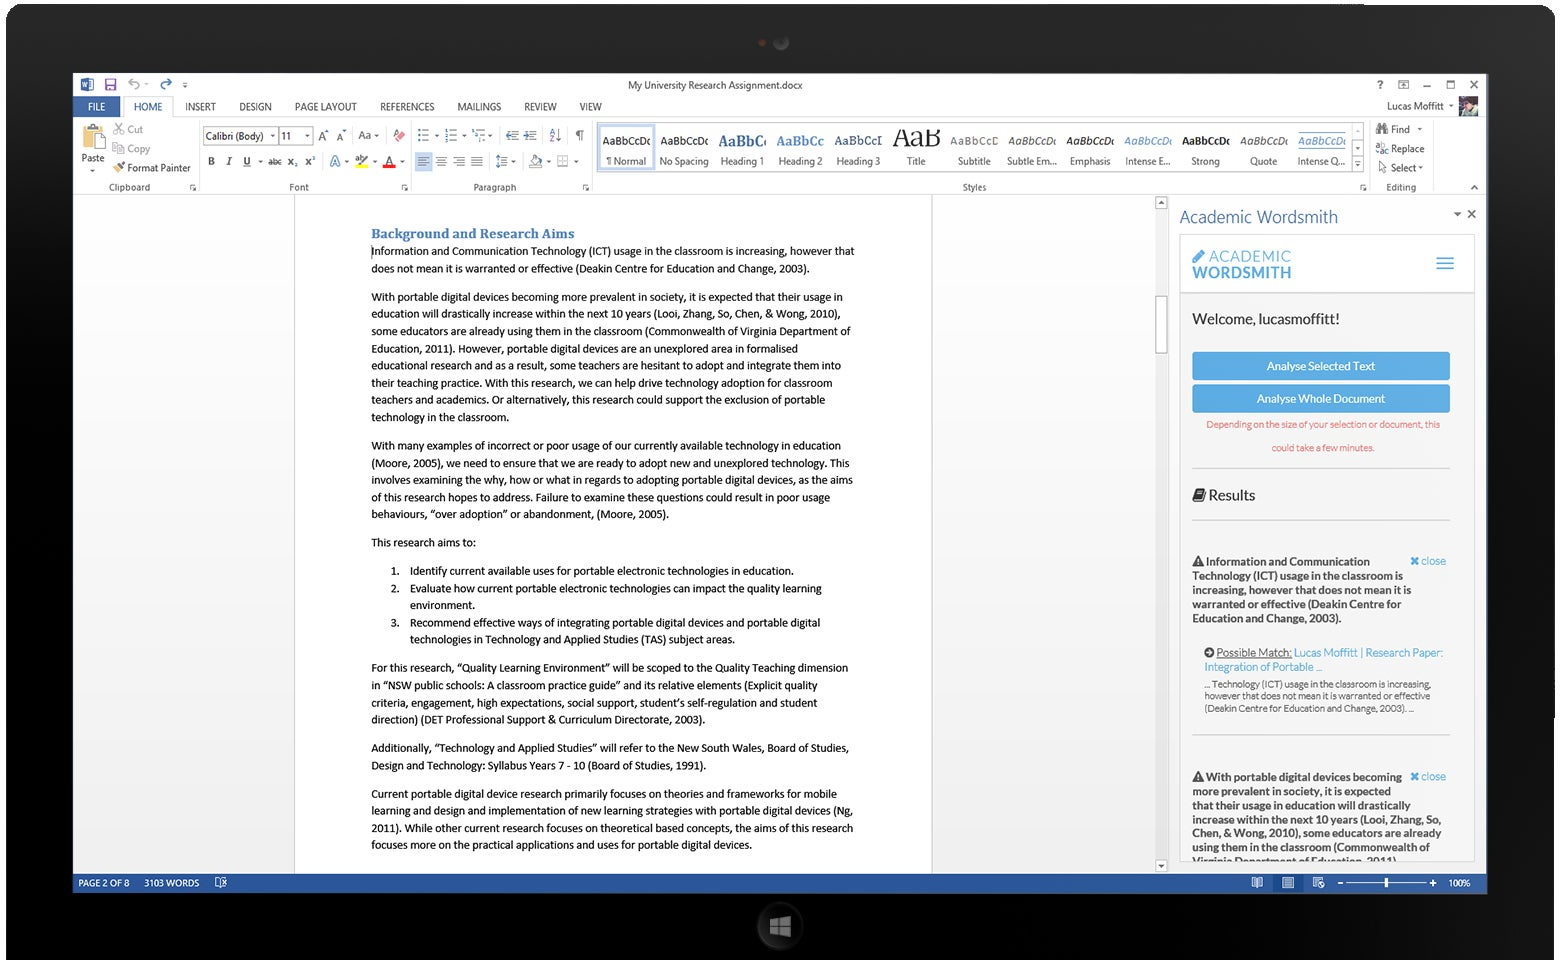 real time plagiarism checker debuts for microsoft word